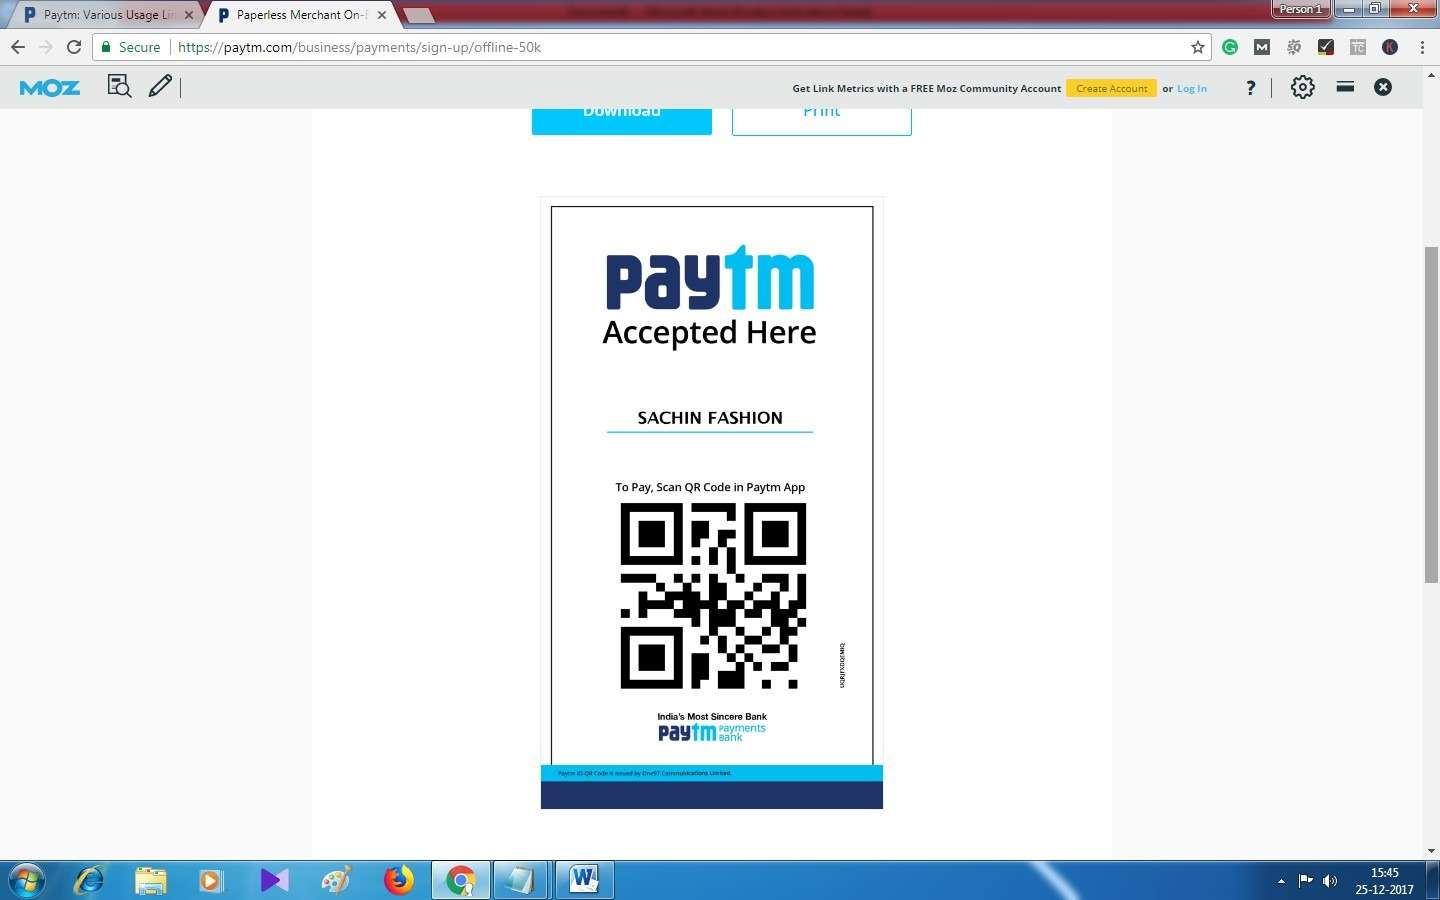 paytm to bank account transfer.